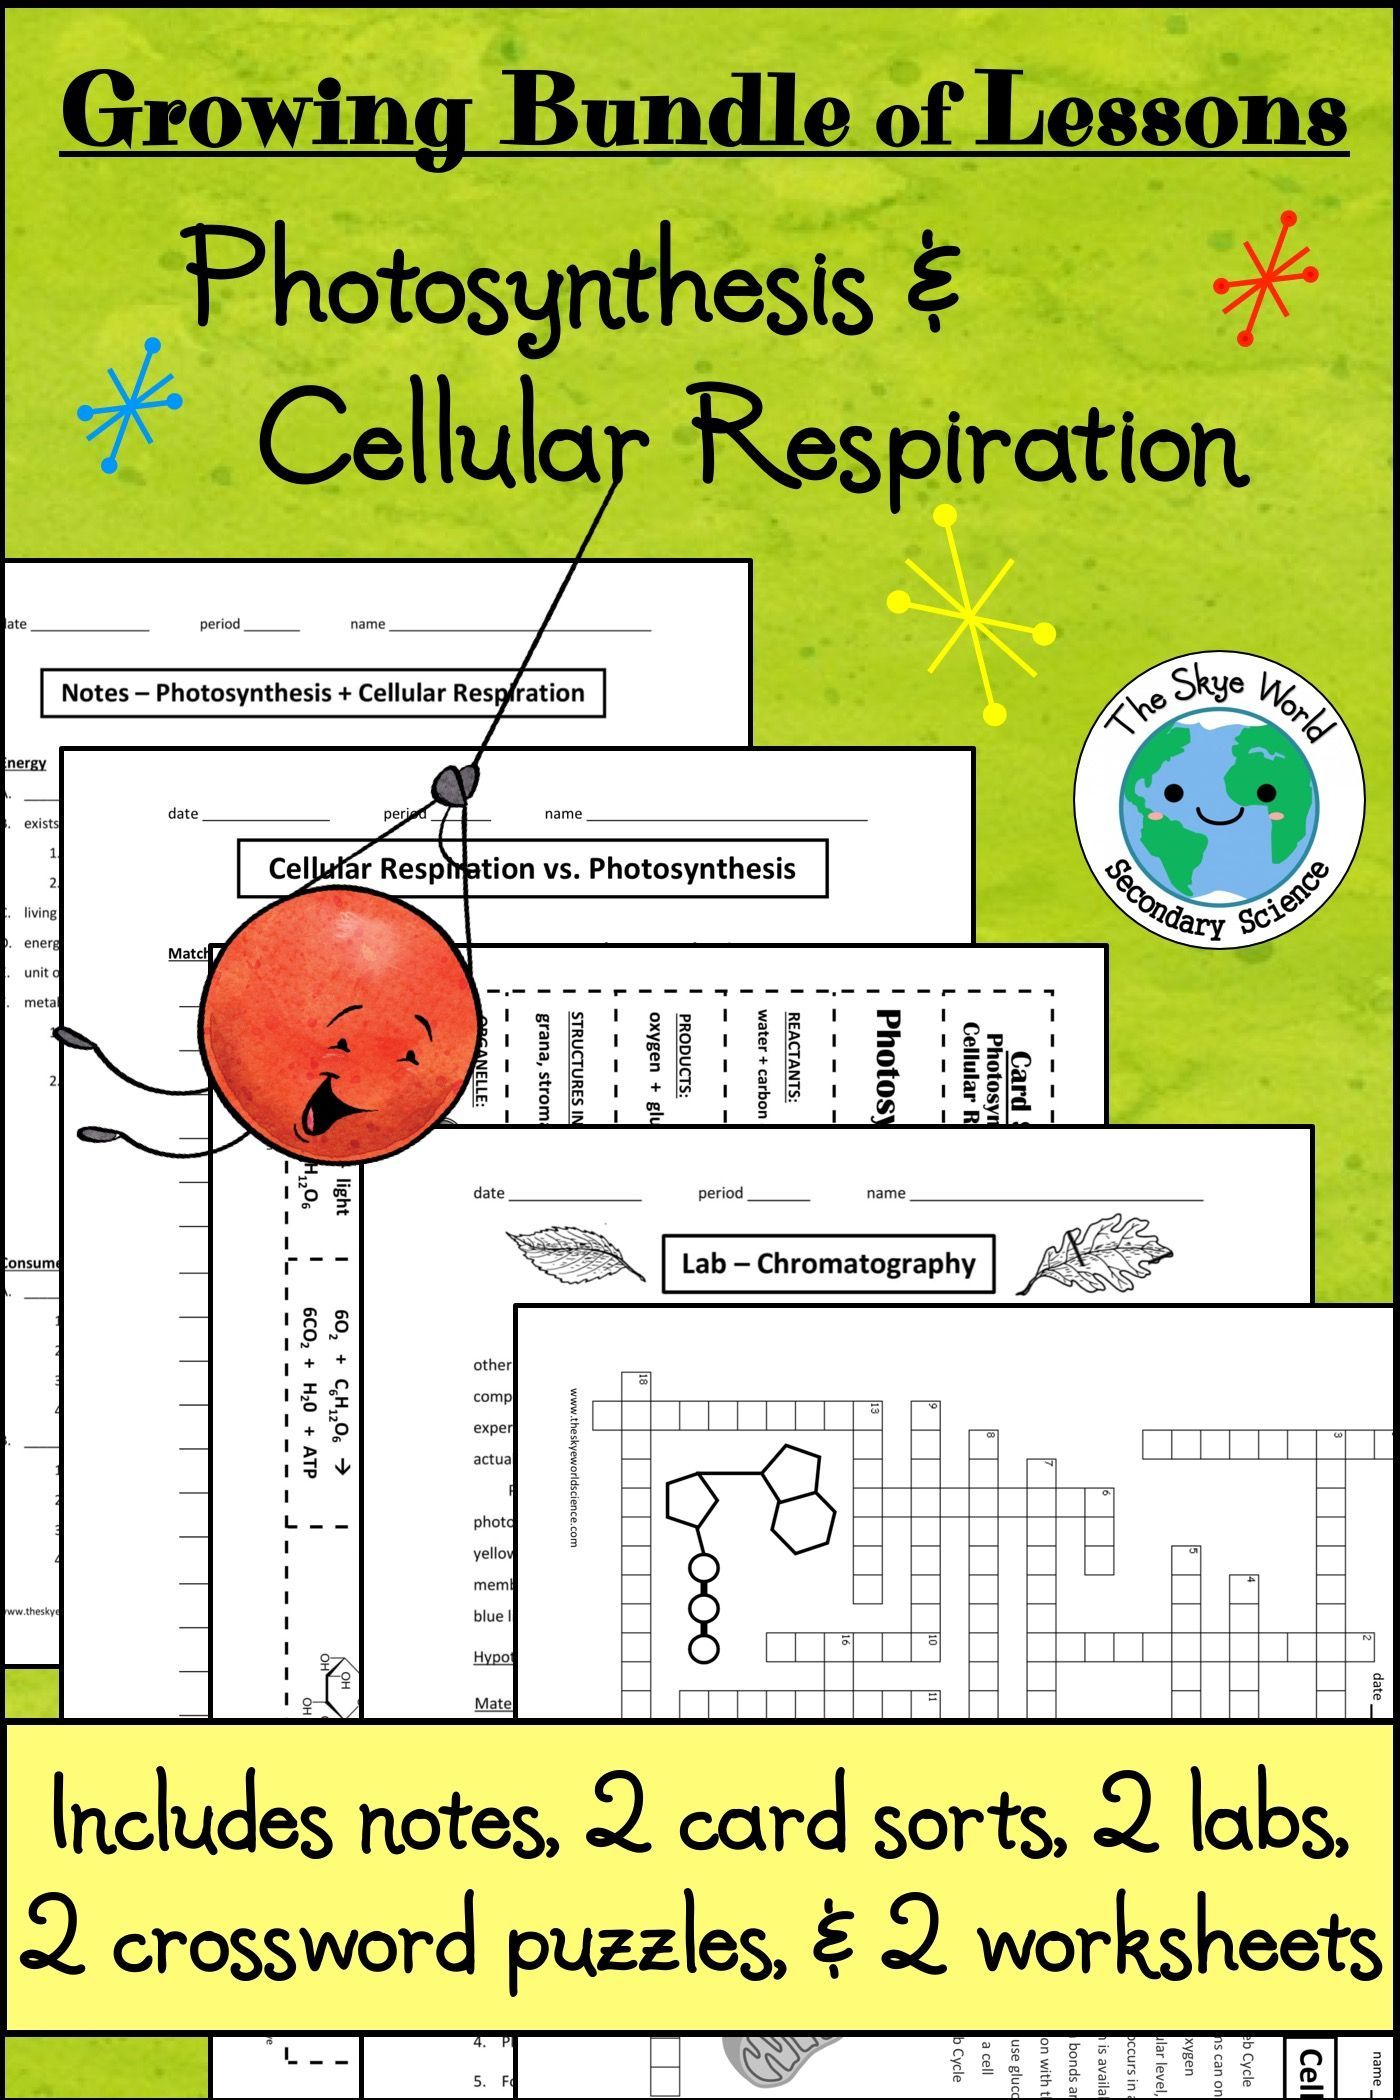 Cellular Respiration Steps Inputs And Outputs Idalias Salon